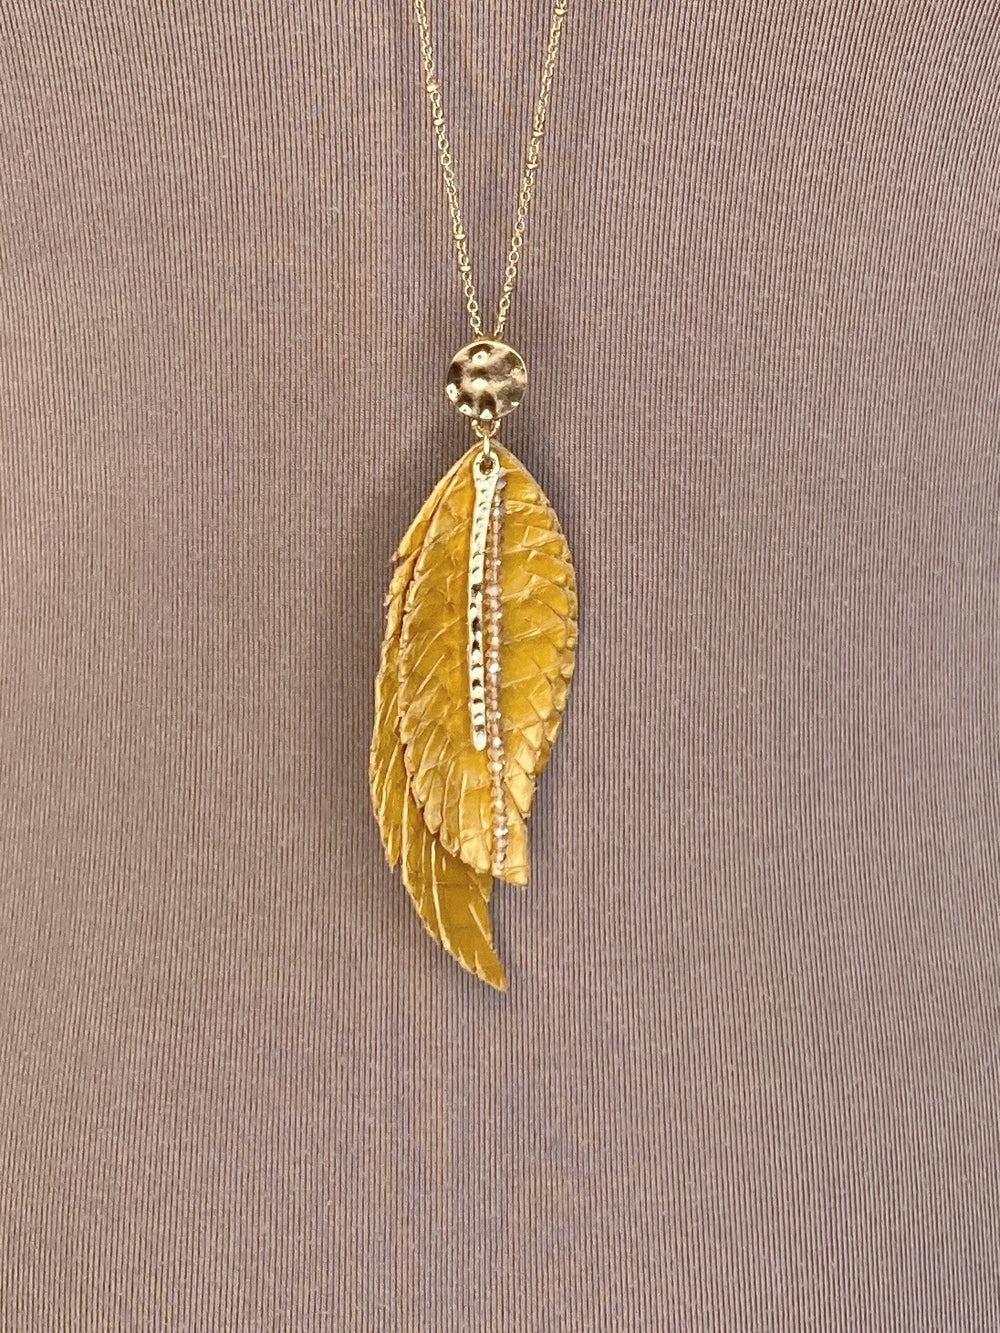 NECKLACE - Lightweight Golden Leaf